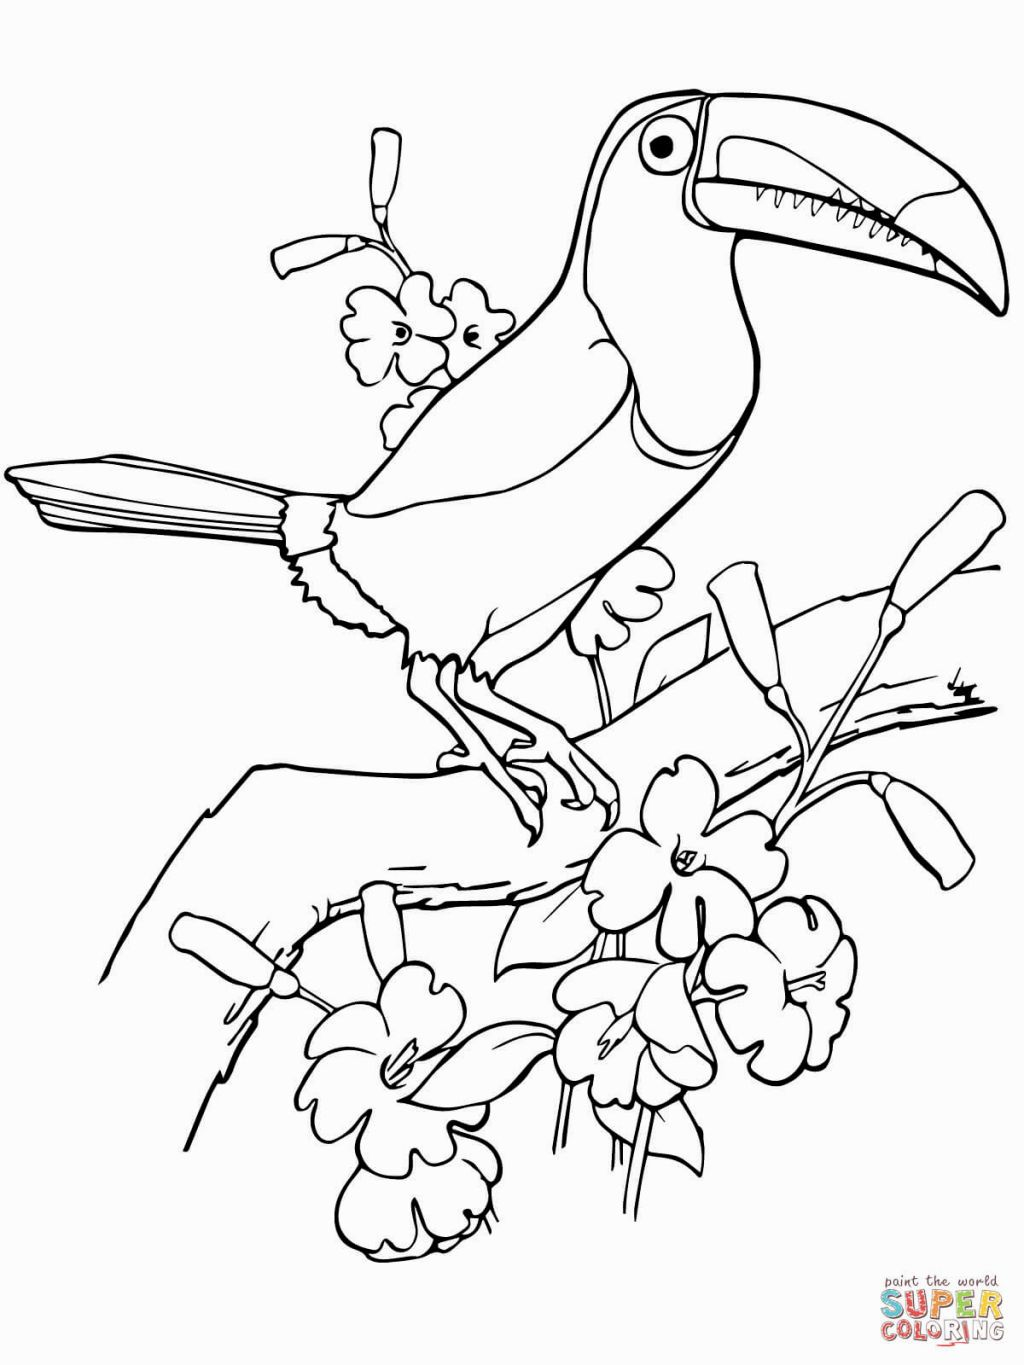 toucan pictures to print toucan audio stories for kids free coloring pages from to toucan print pictures